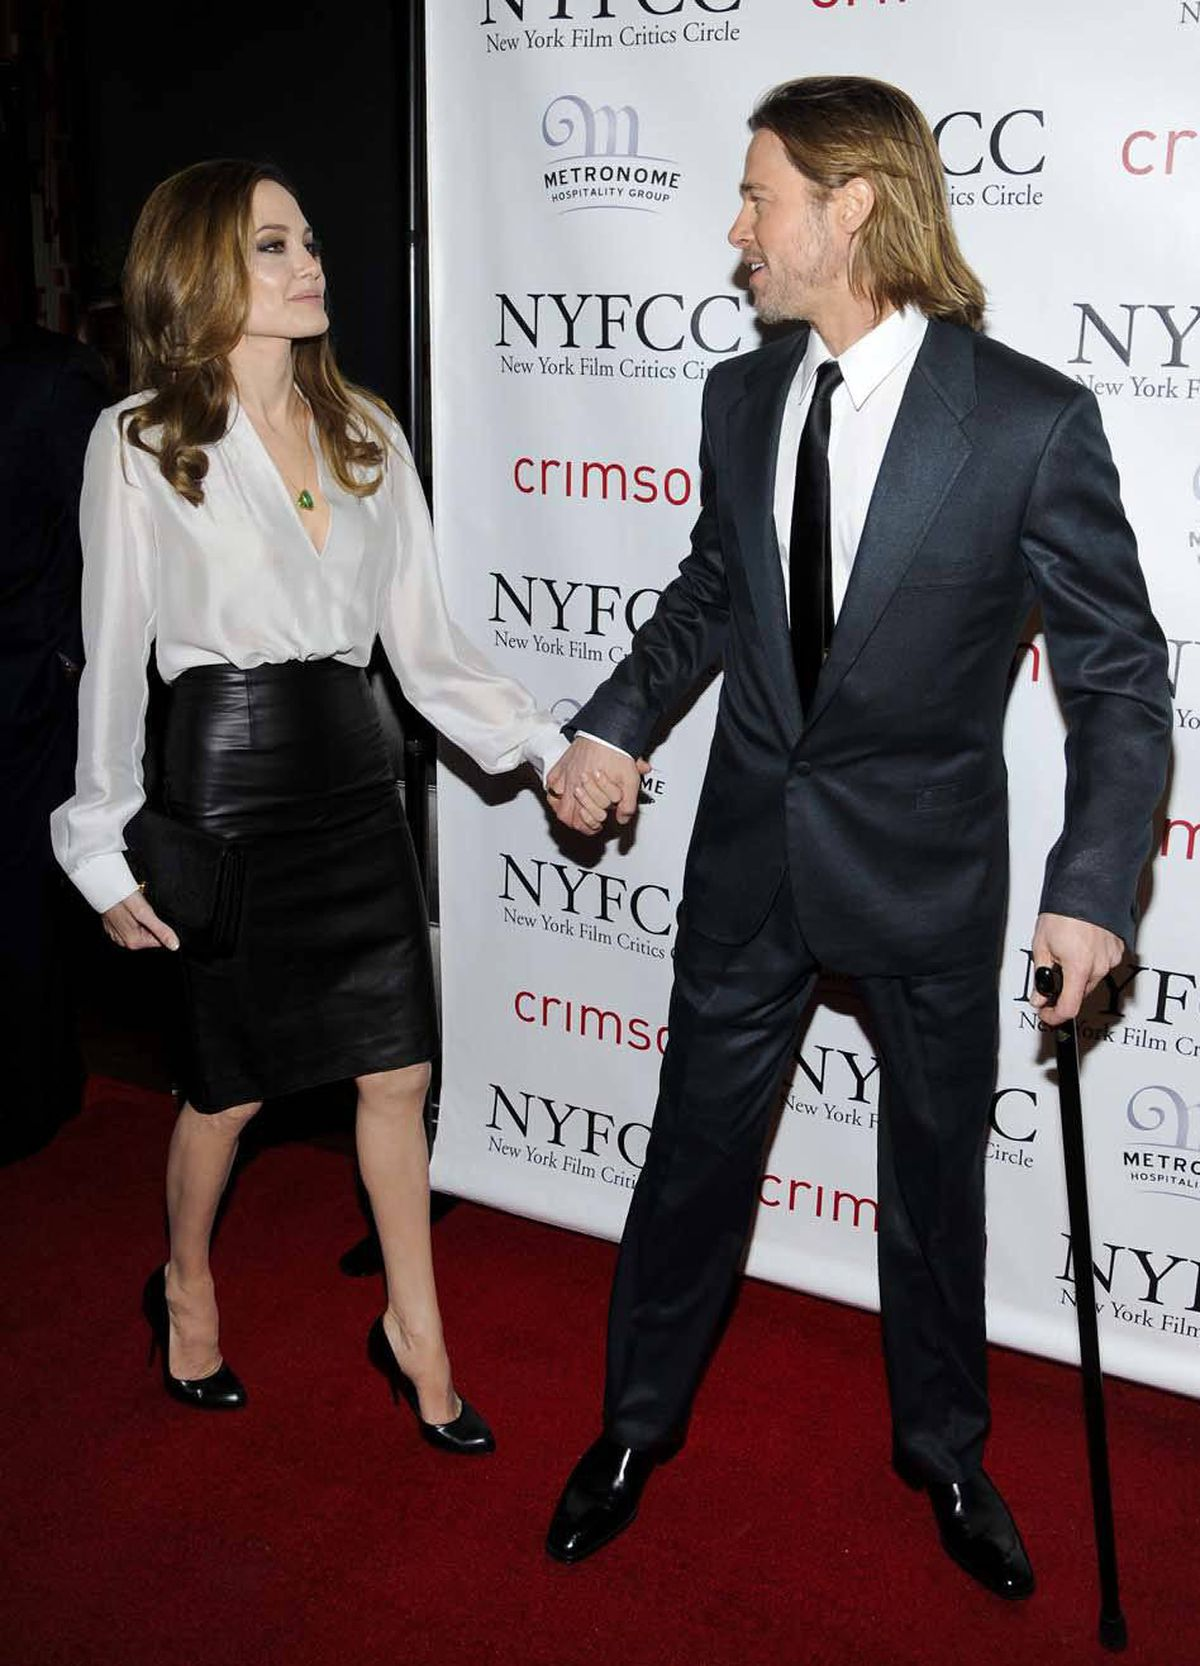 And then they nailed it again two days later at the New York Film Critics Circle Awards in New York City. It's almost like they practise this stuff.